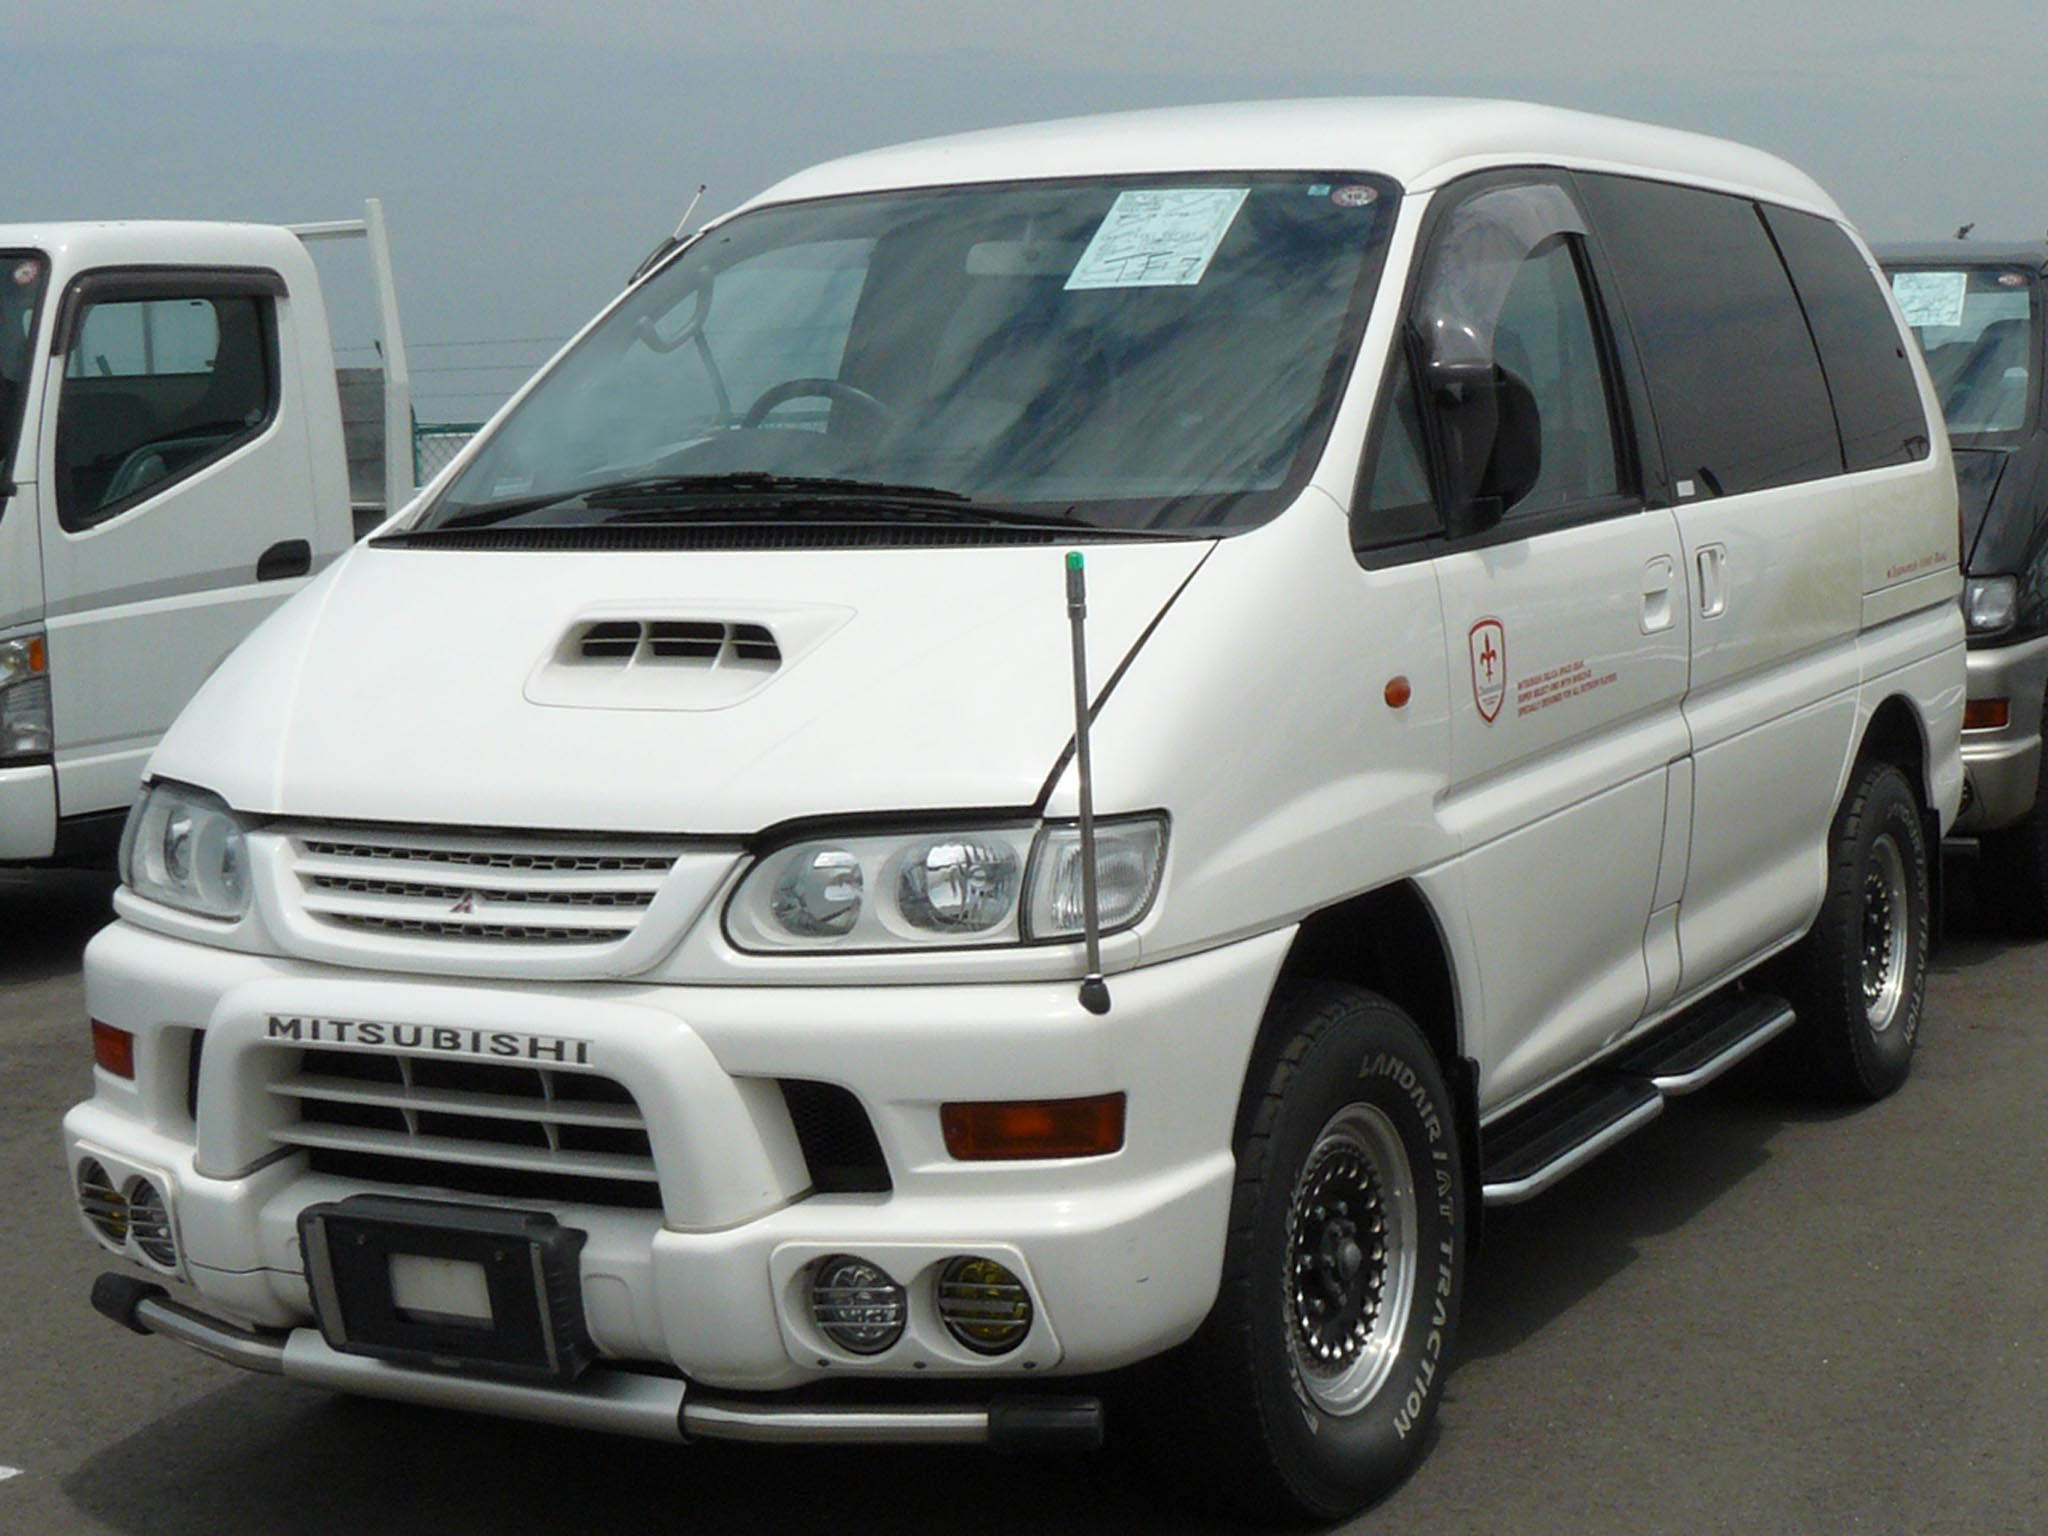 Mitsubishi Delica: specifications and photos 12